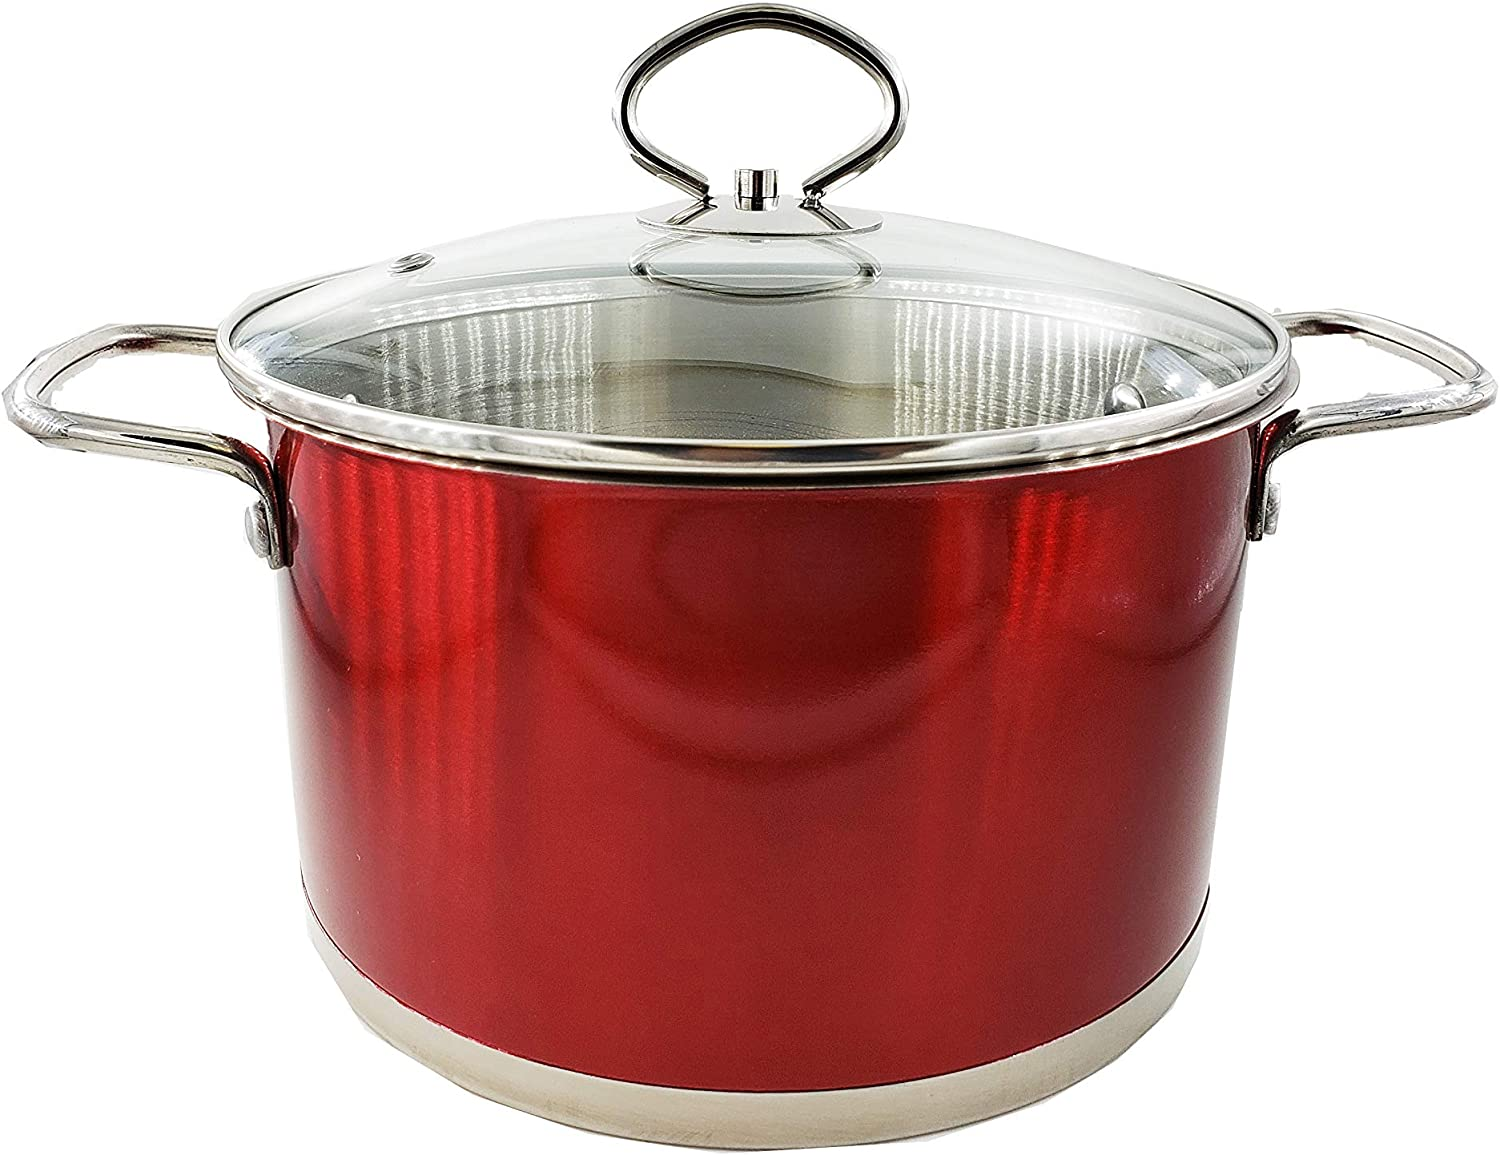 Stainless Steel 3QT Red Soup Pot with Glass Lid